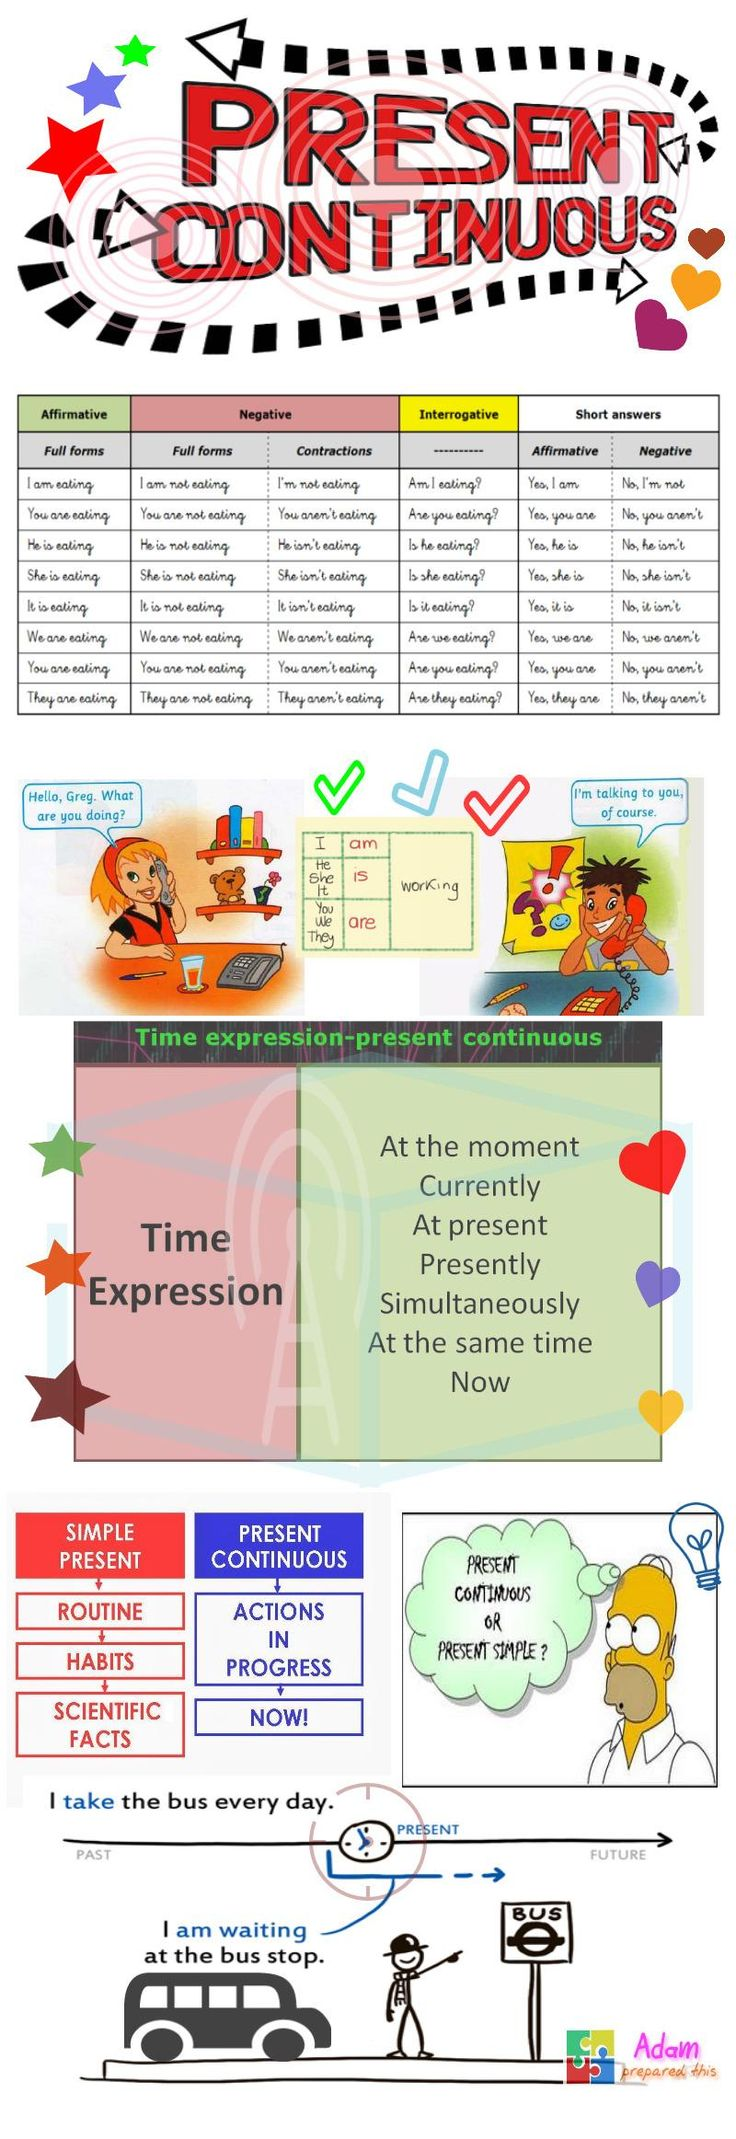 Infographic: Present continuous tense | Teach them English #learnenglish http://www.legalenglish.co.uk